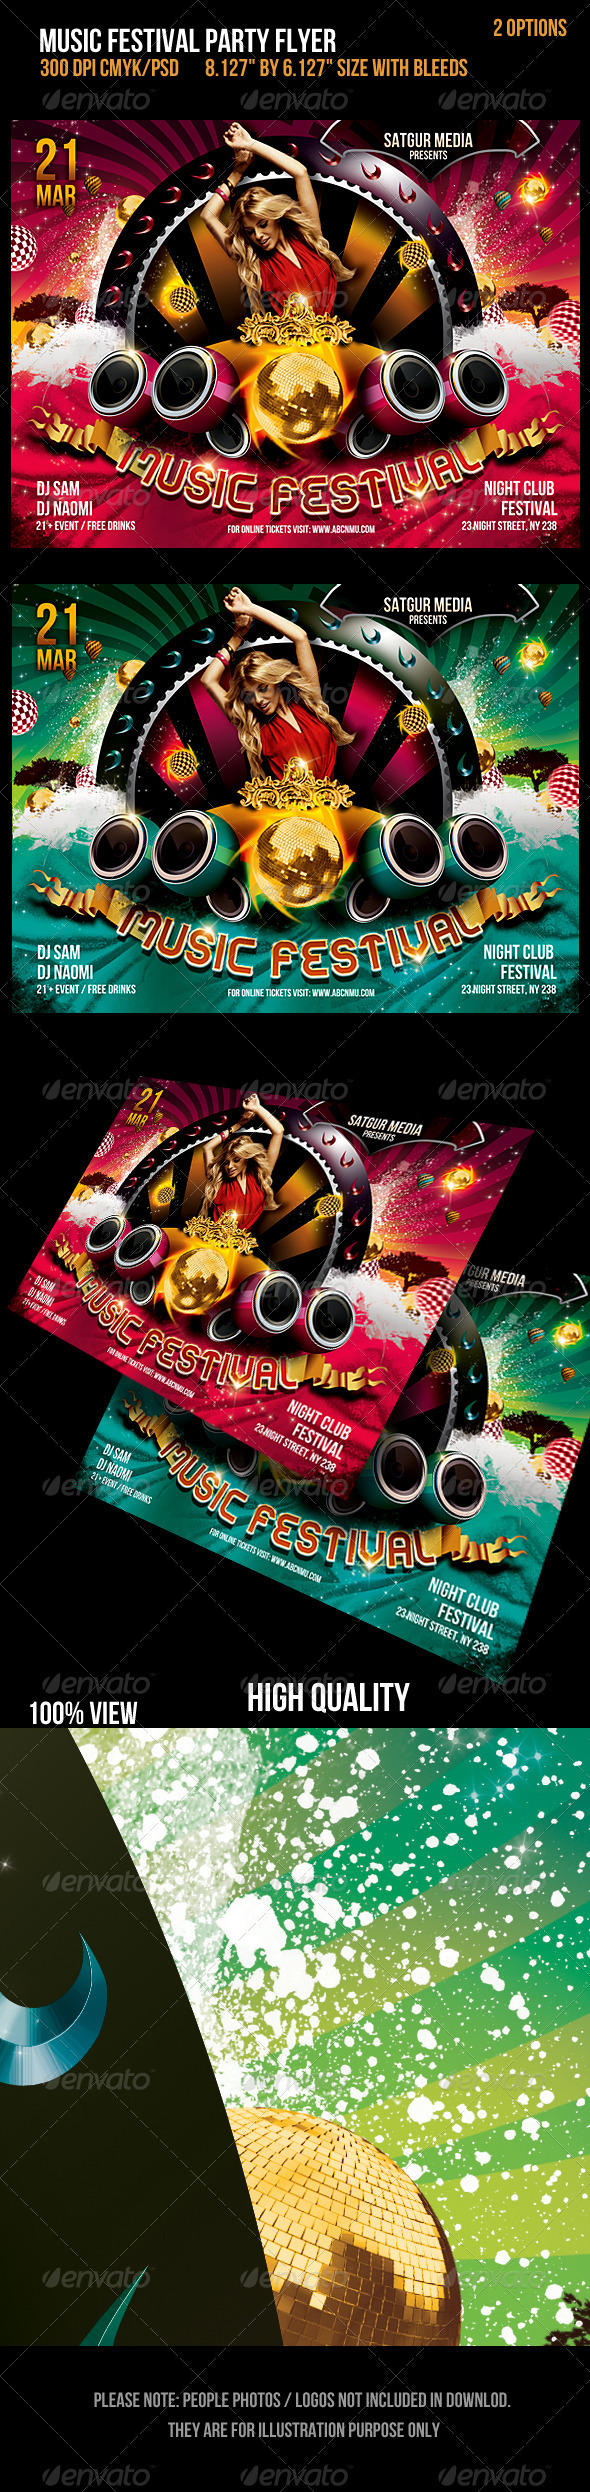 Music Festival Dance Party Flyer - Flyers Print Templates